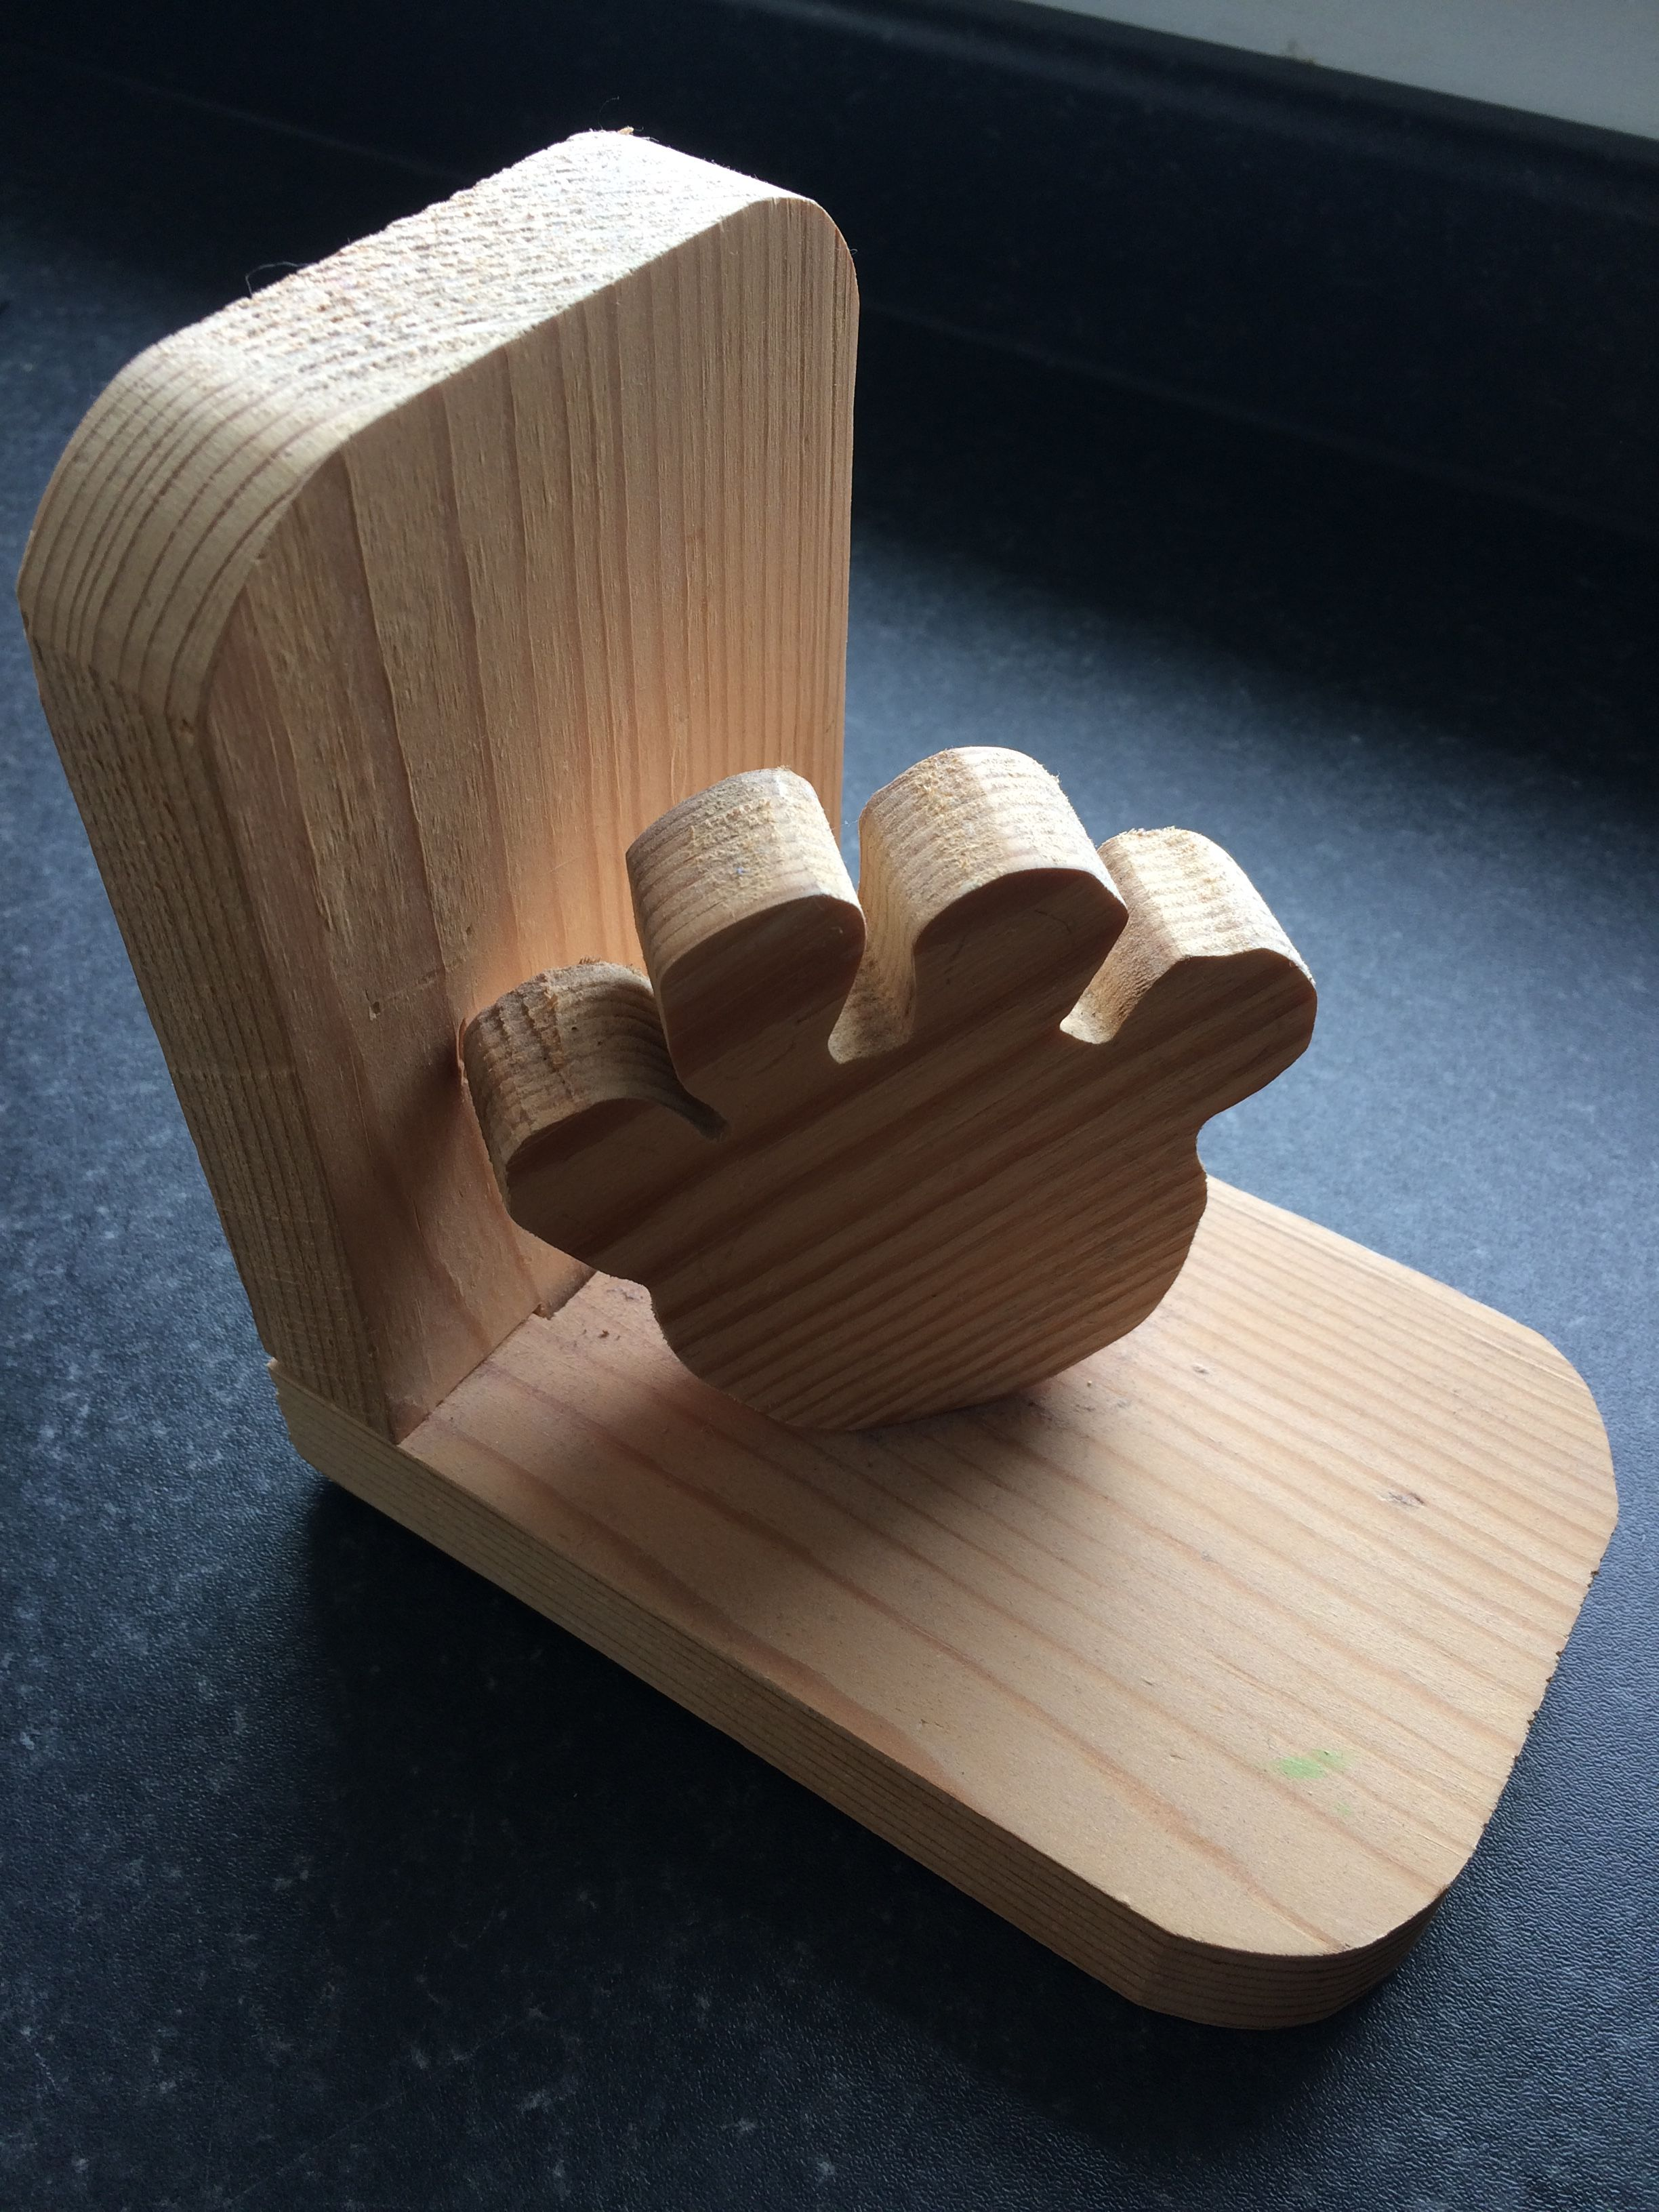 ks3 bookend project | dt research board ks3 | wooden toys